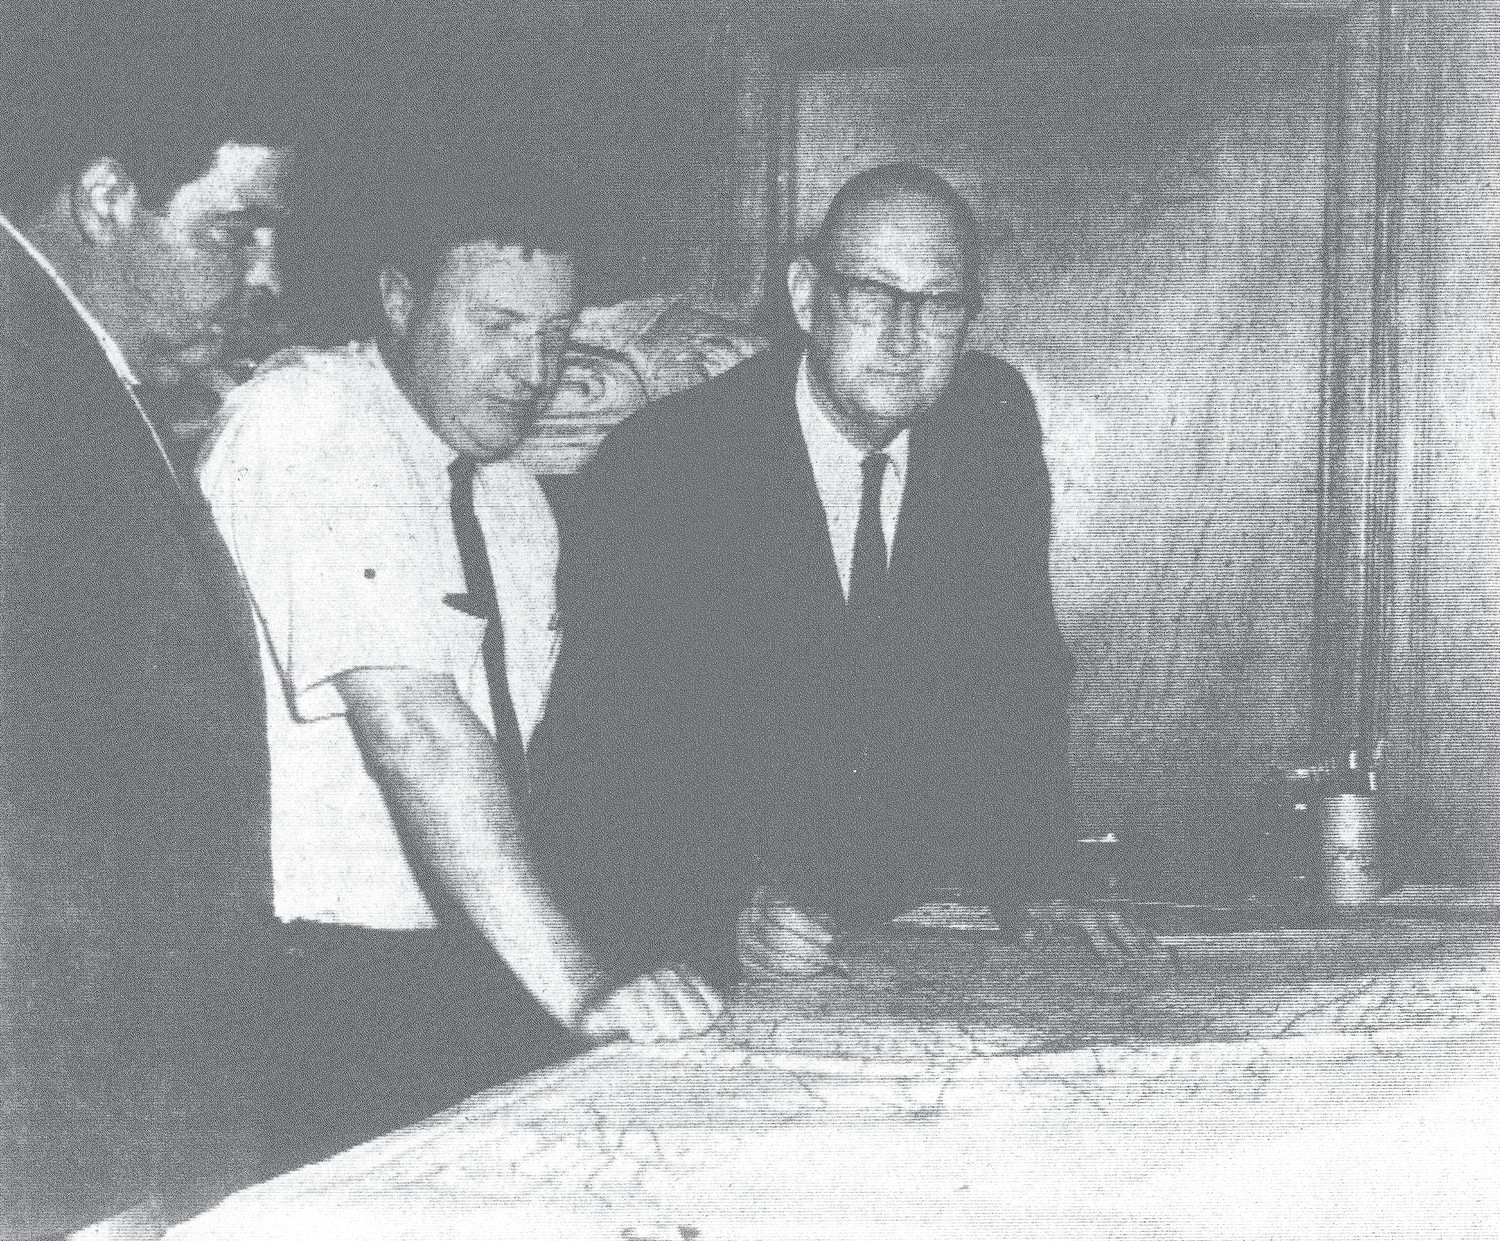 1968 - Base mapping, the first phase of comprehensive planning studies of Sumter County, is charted by, from left, Ed Gussio and Don Johnson, planning director and technician, respectively, and James Nettles, chairman of the County Planning Board.